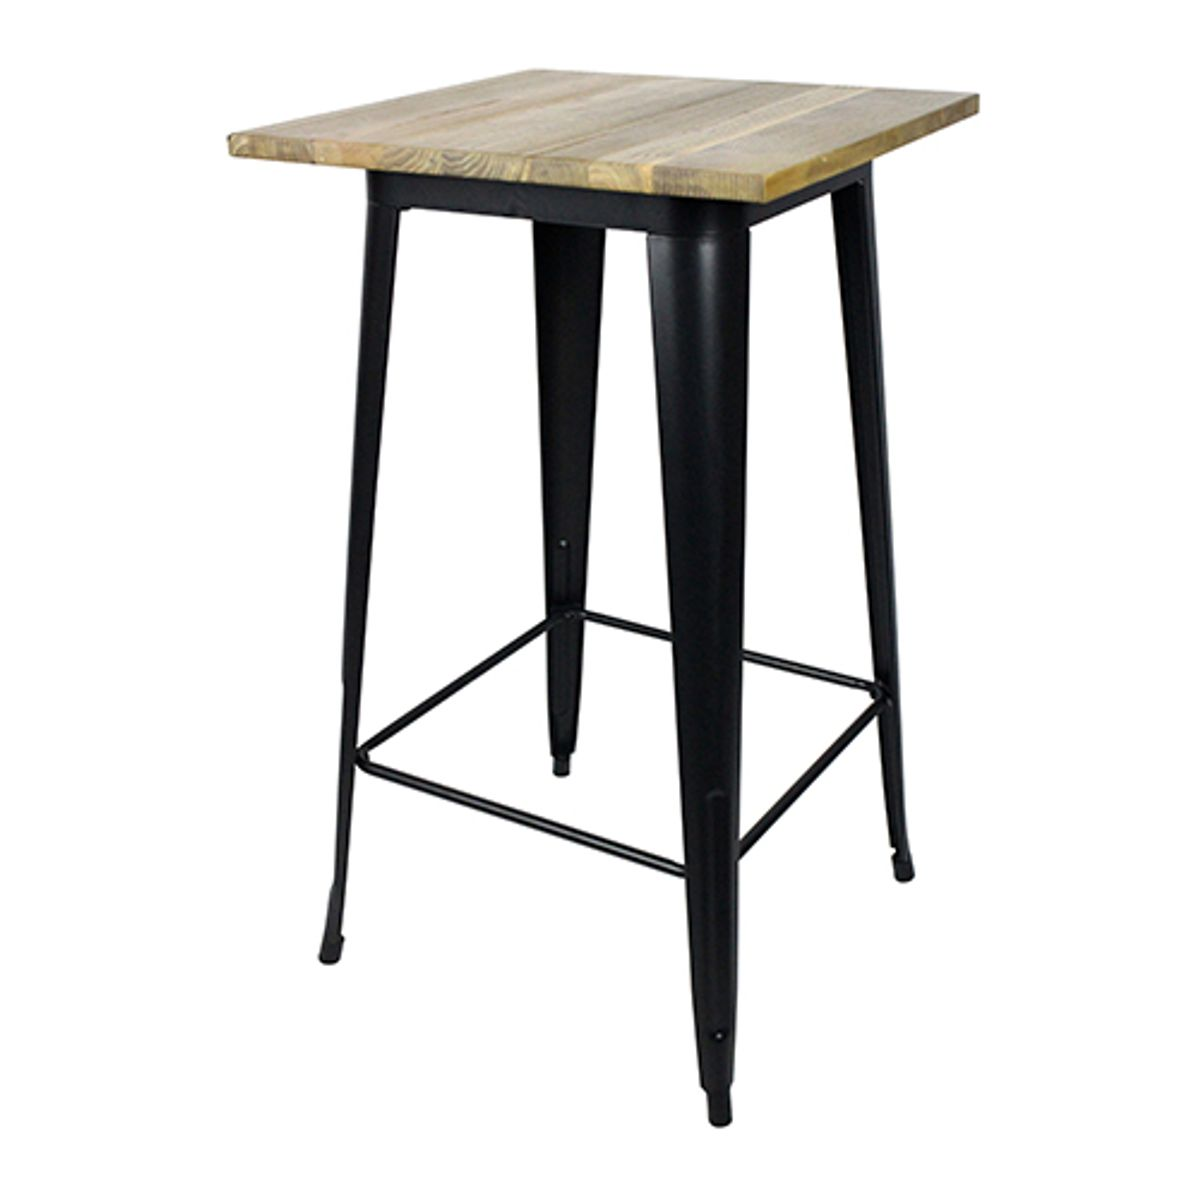 Table de bar carr e en acier noir mat et plateau orme Table bar carree